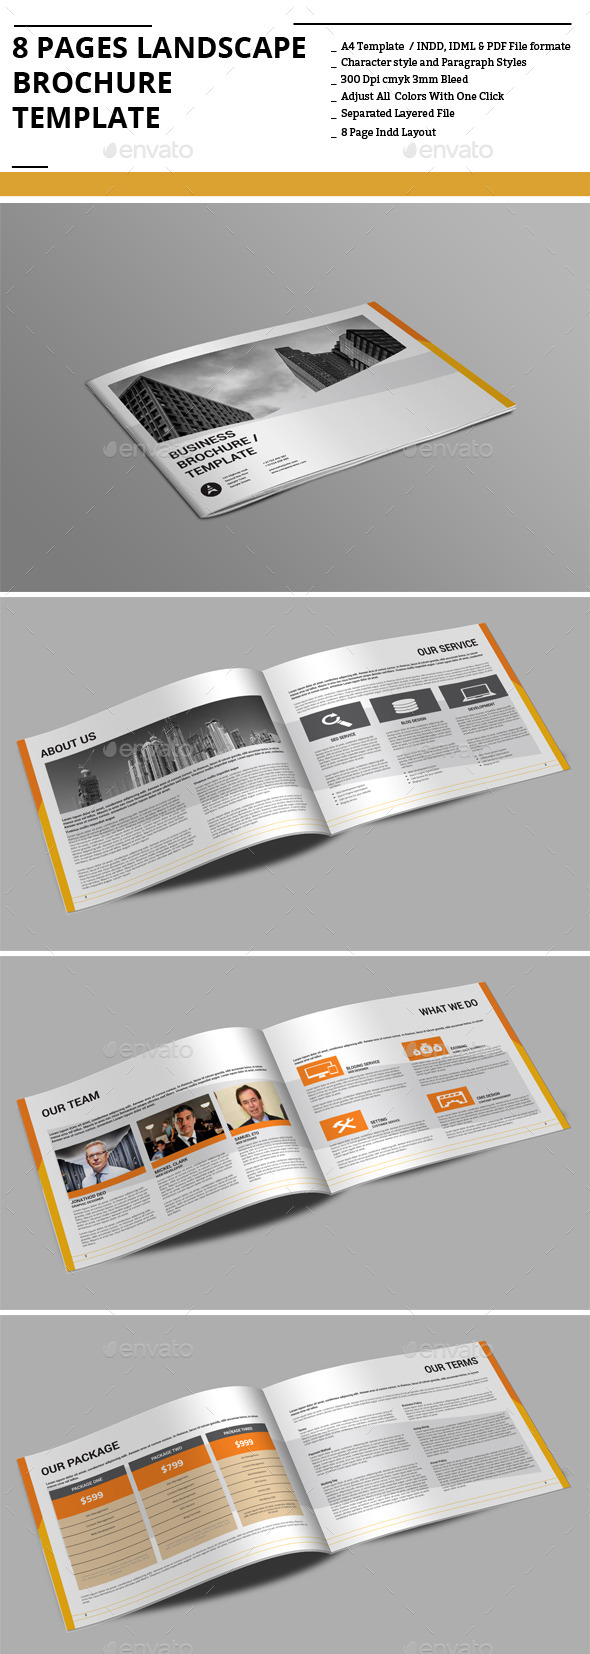 GraphicRiver 8 Pages Landscape sBrochure Template 9160273